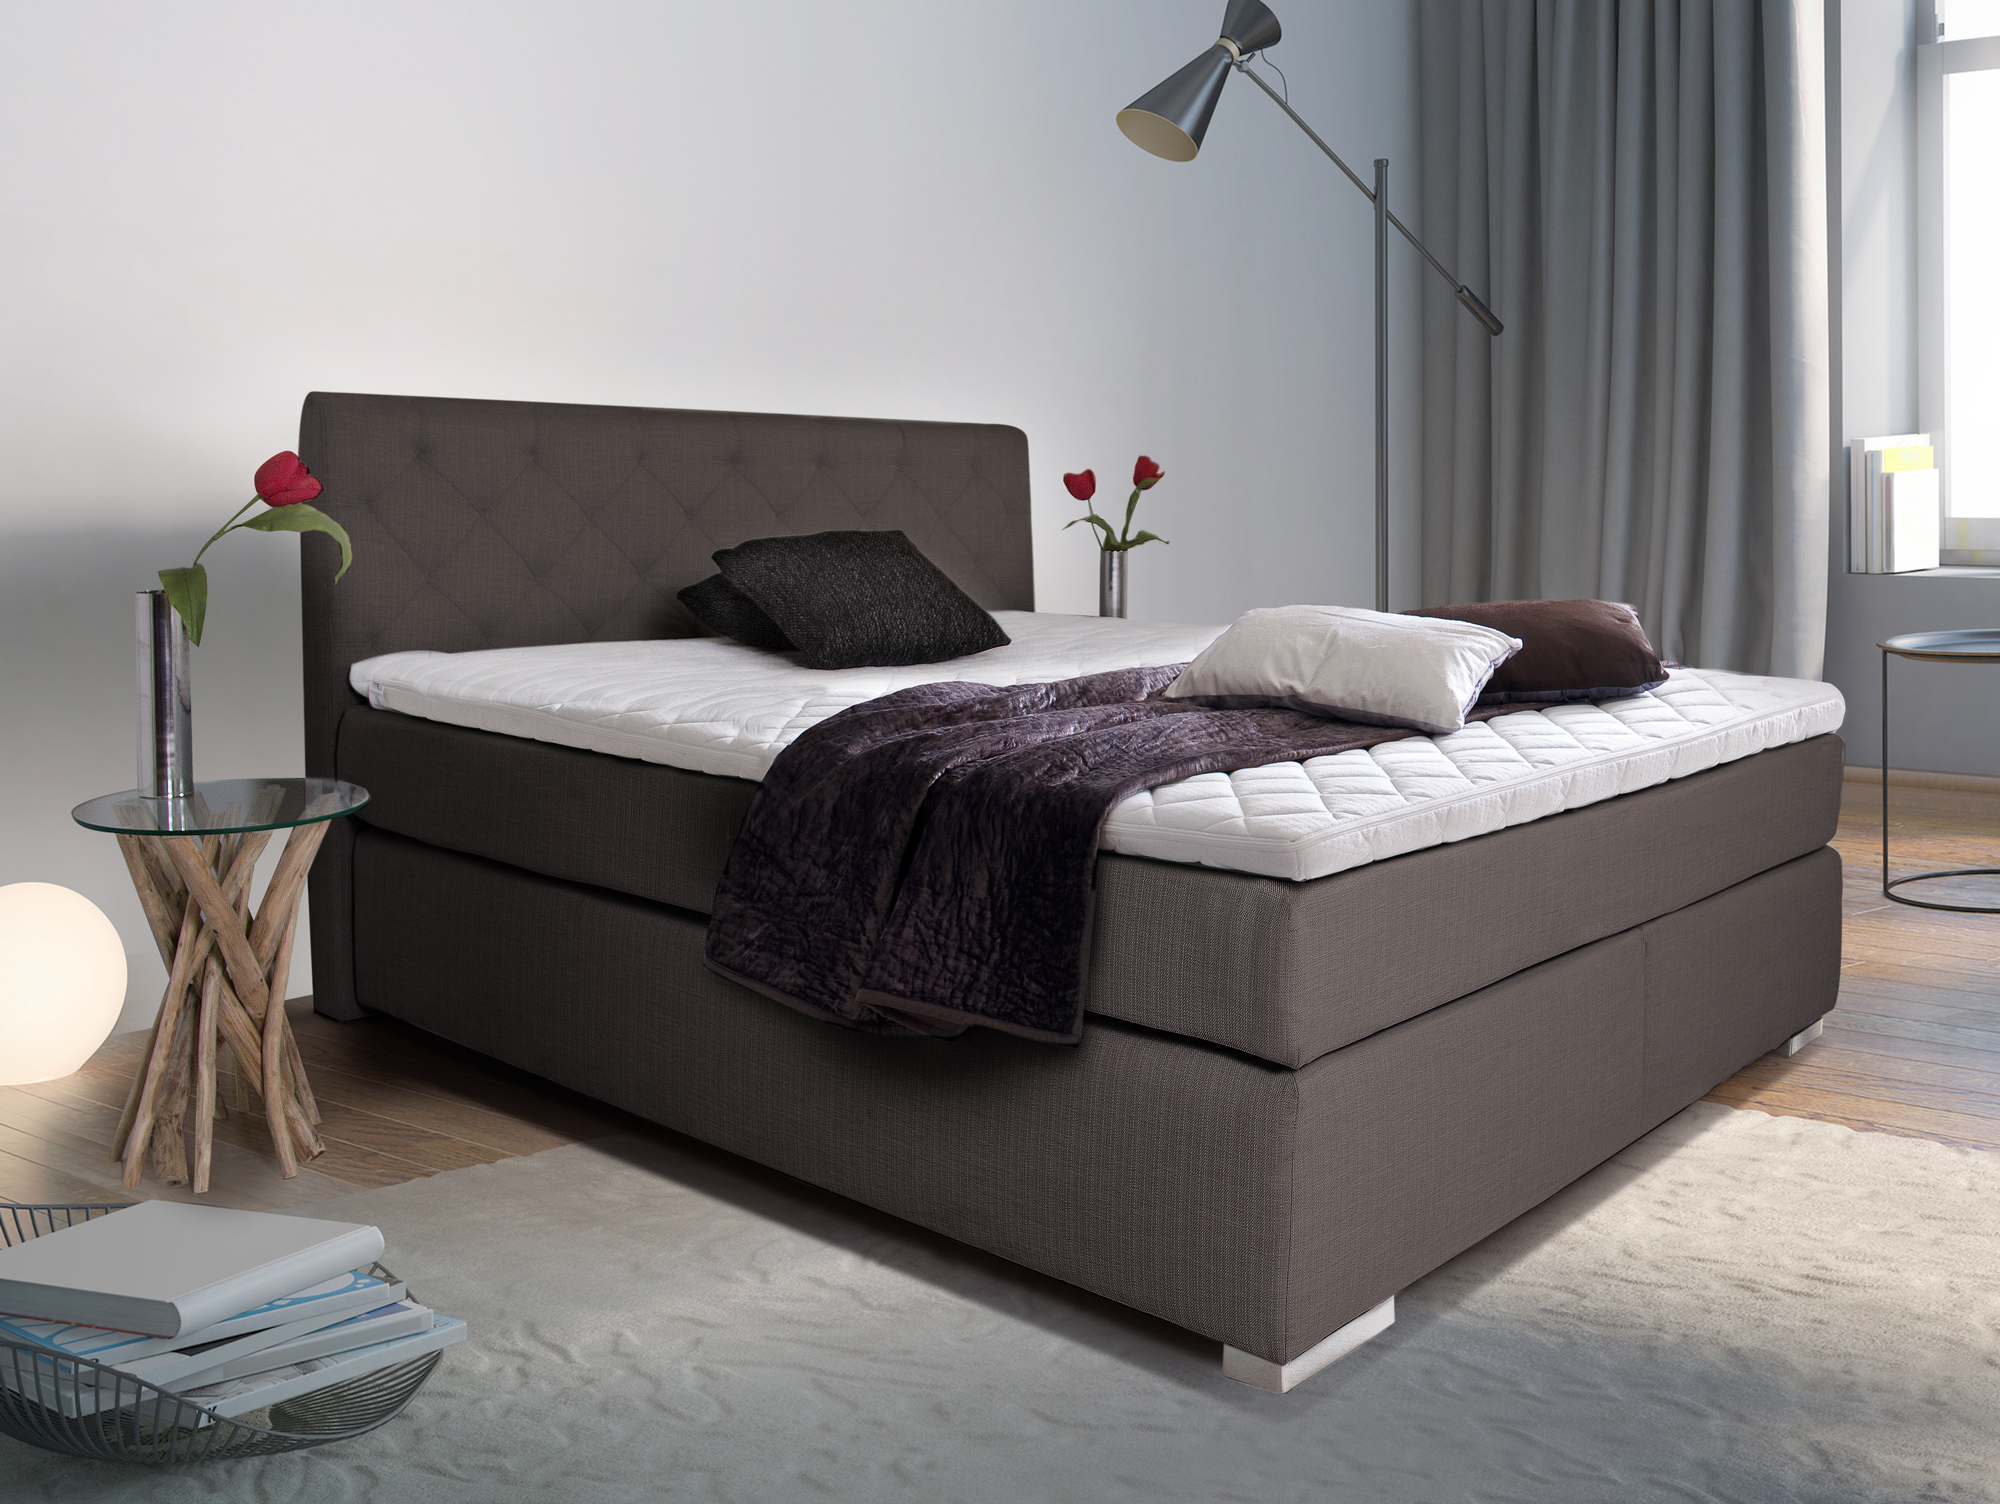 premium boxspringbett inkl kopfteil 90 x 200 cm braun. Black Bedroom Furniture Sets. Home Design Ideas